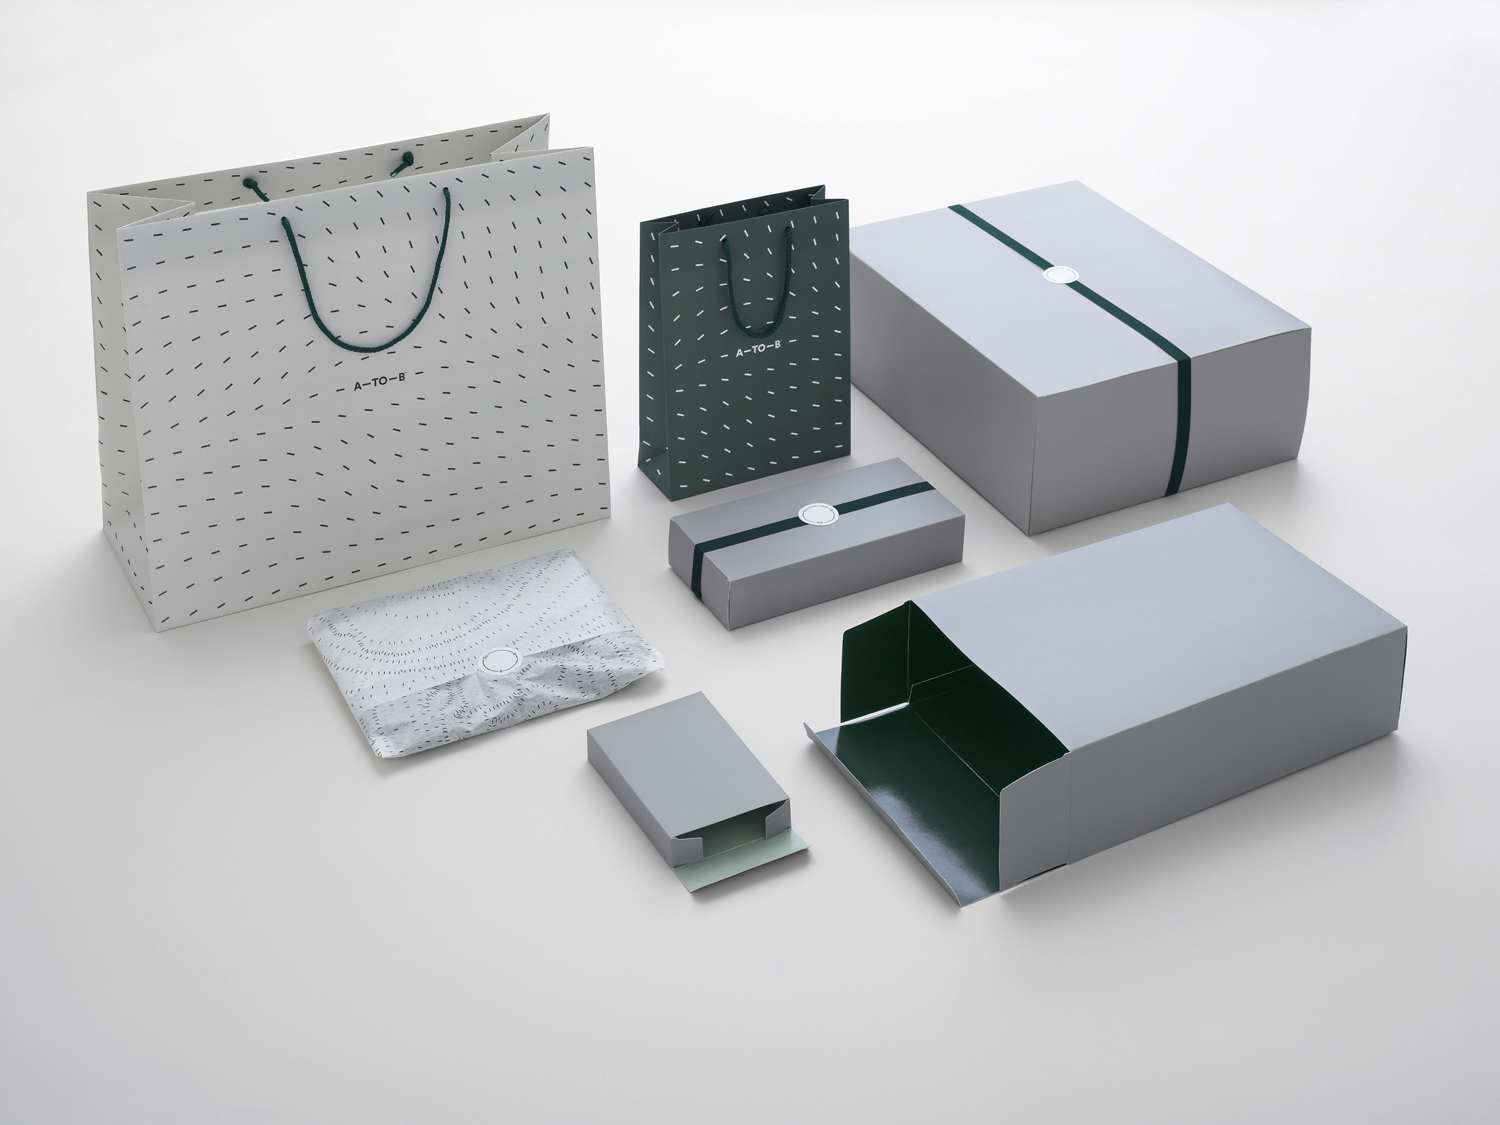 Brand identity, retail packaging and bags for Scandinavian retailer, bag and travel specialist A-TO-B by Stockholm Design Lab